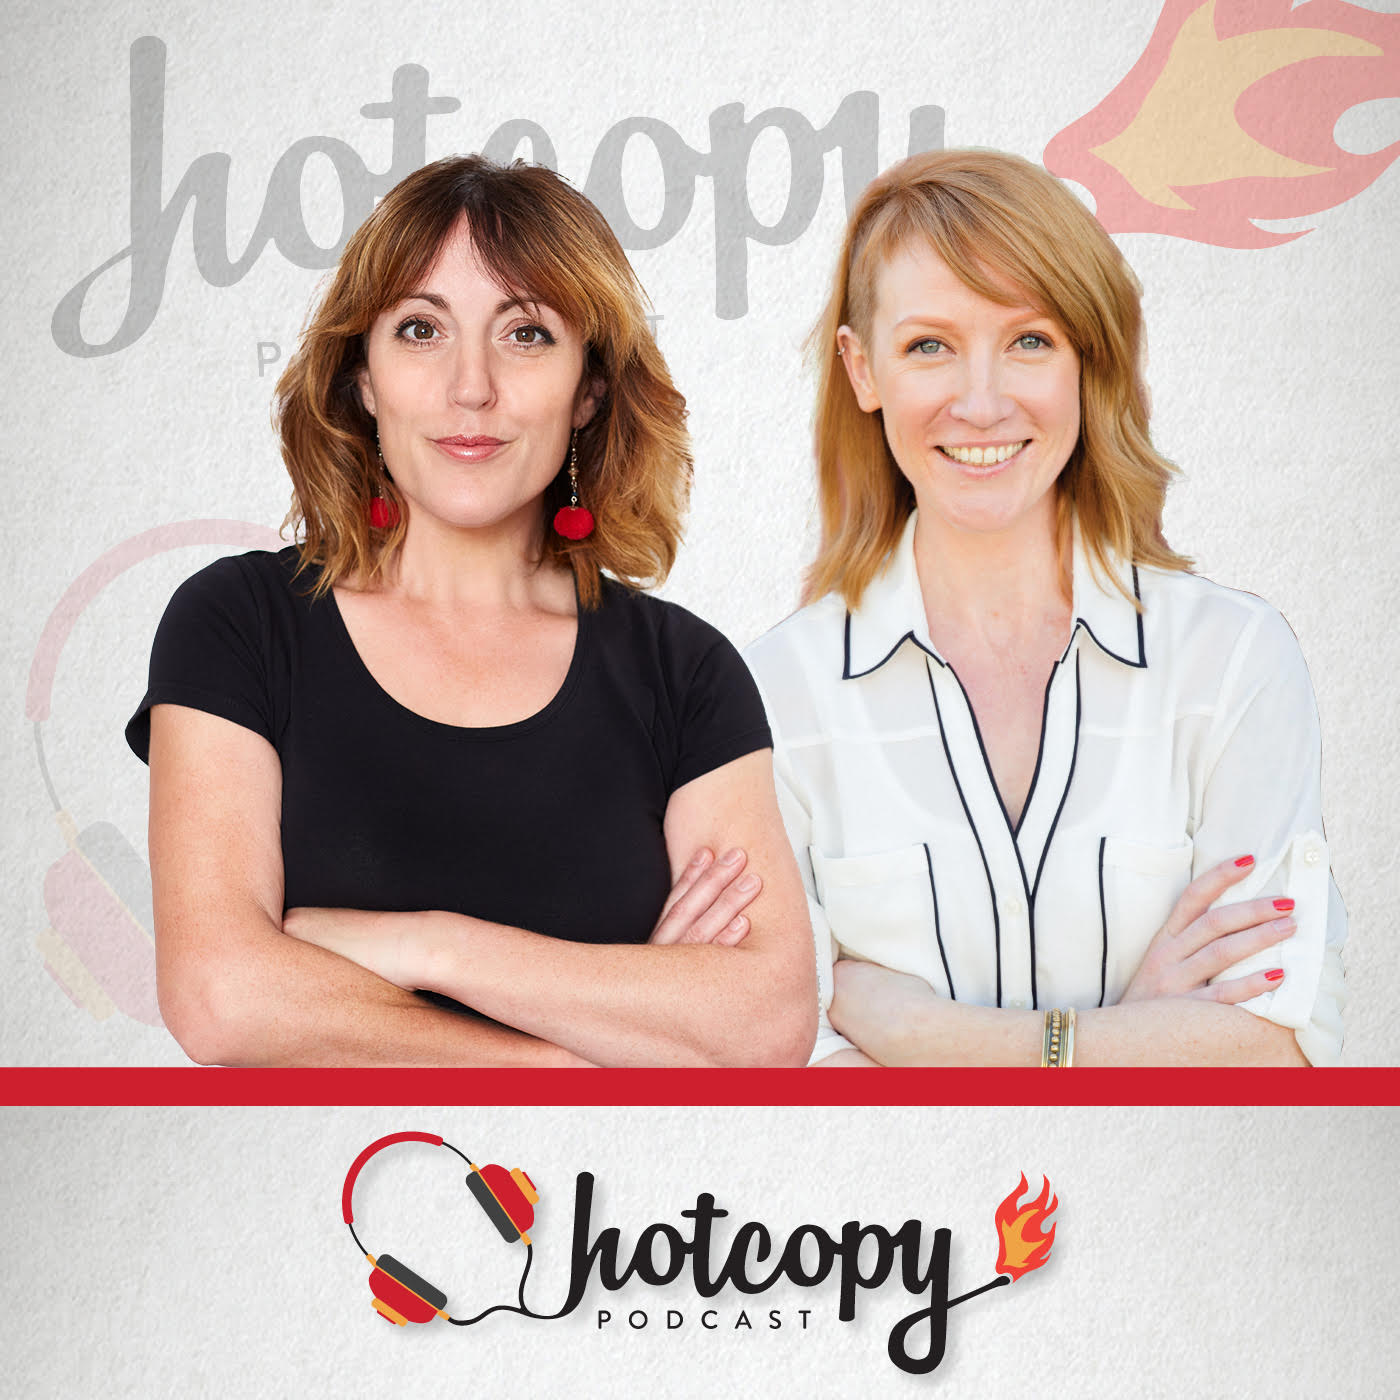 Hot Copy: A copywriting podcast for copywriters